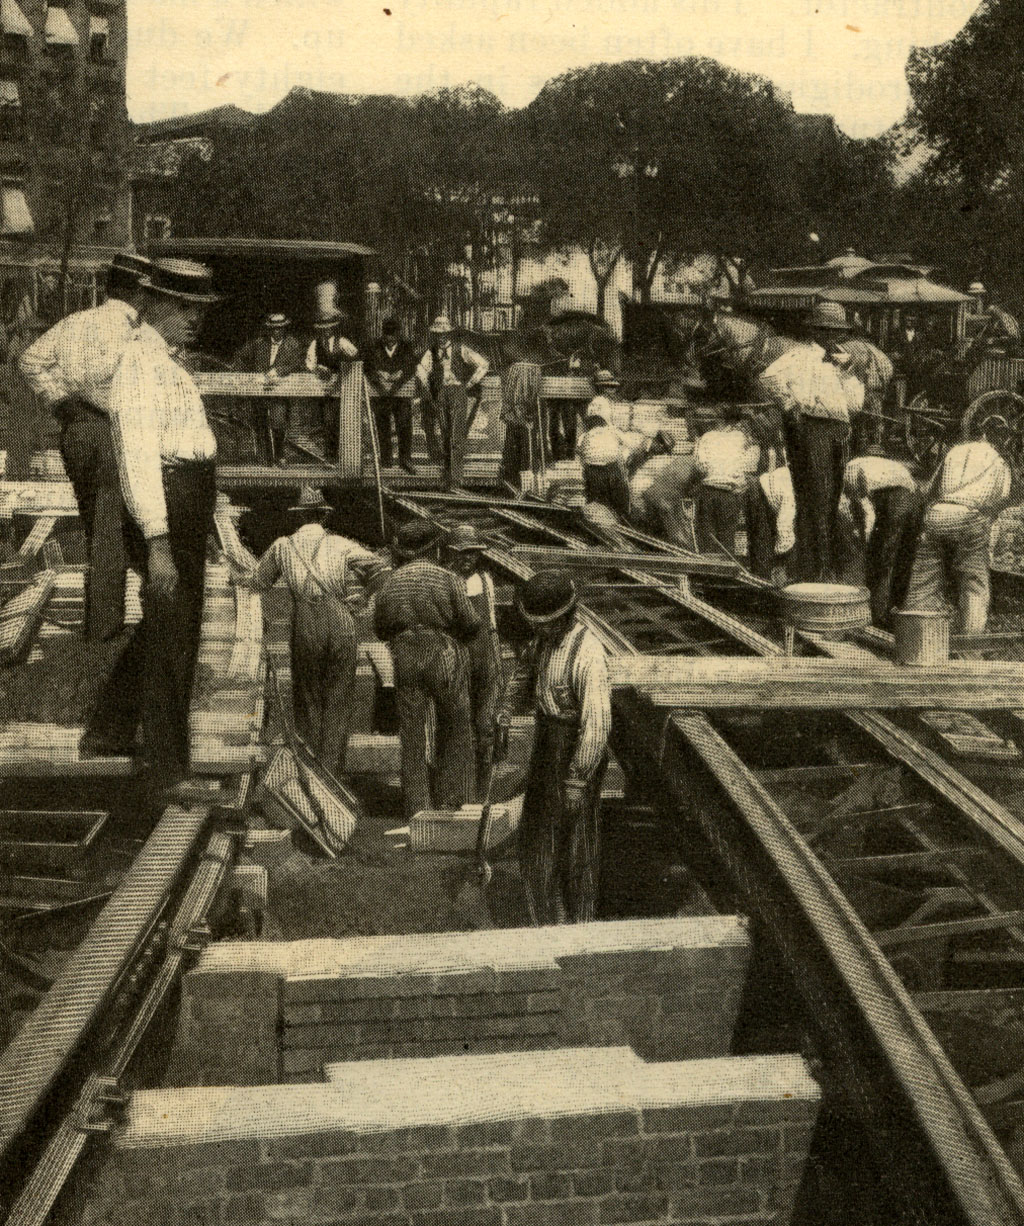 (481k, 1024x1226)<br><b>Country:</b> United States<br><b>City:</b> New York<br><b>System:</b> New York City Transit<br><b>Photo by:</b> Munsey's Magazine, 1902 <br><b>Notes:</b> Preliminary work in the circle at Eighth Avenue and Fifty-ninth Street, where the tracks of the electric surface line on upper Broadway were completed while the construction of the tunnel road was beginning.<br><b>Viewed (this week/total):</b> 5 / 4285